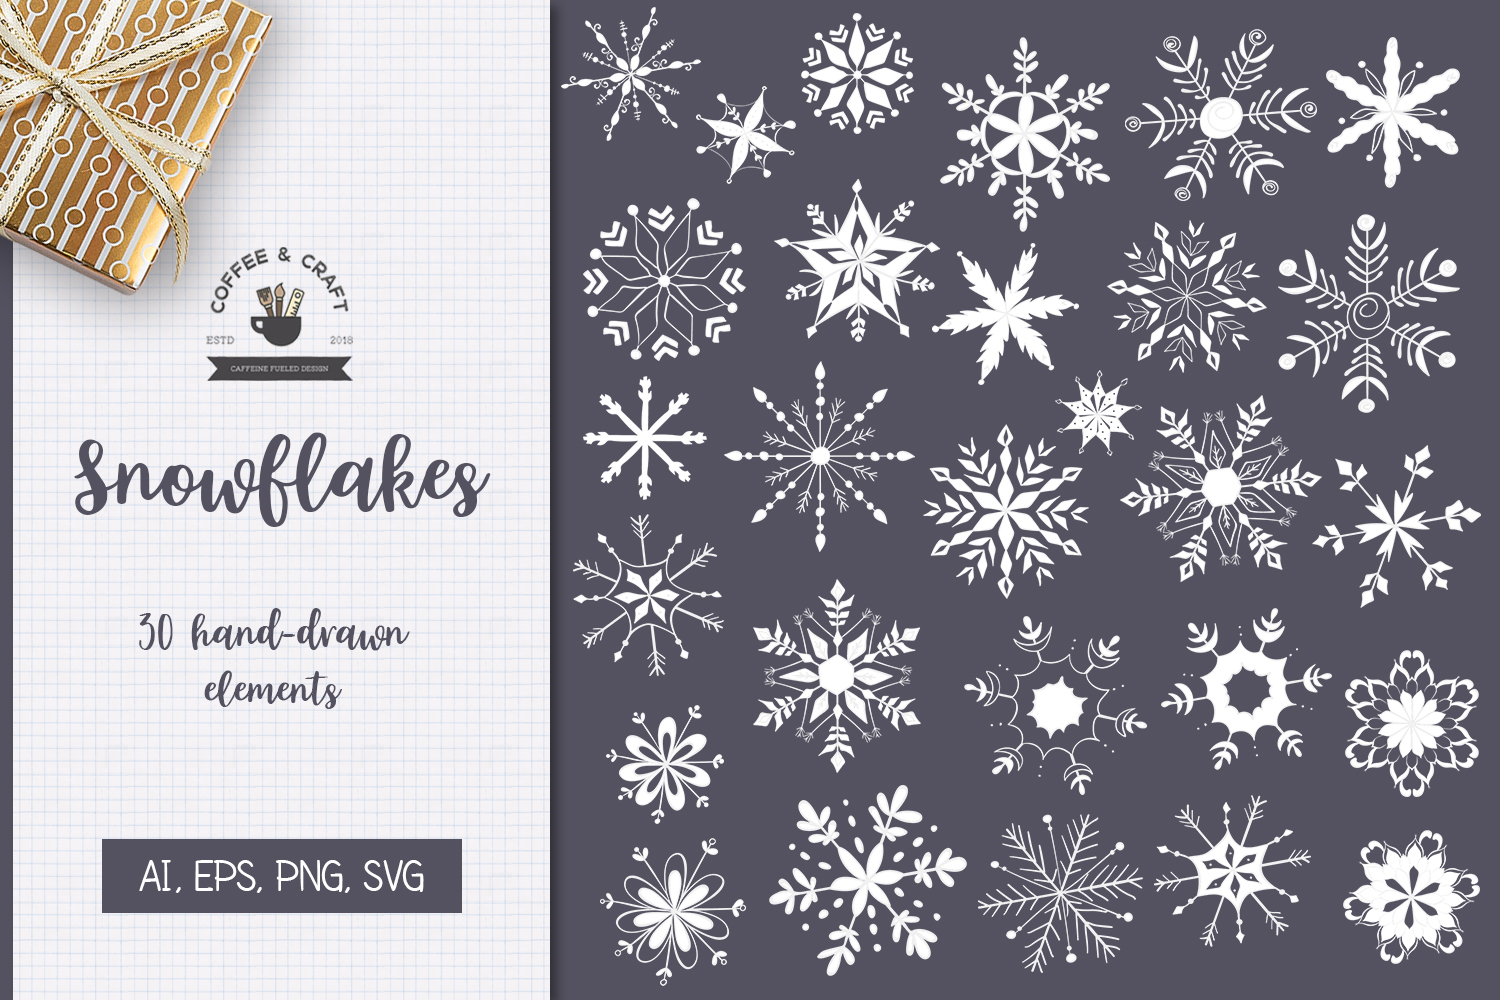 Snowflakes example image 1